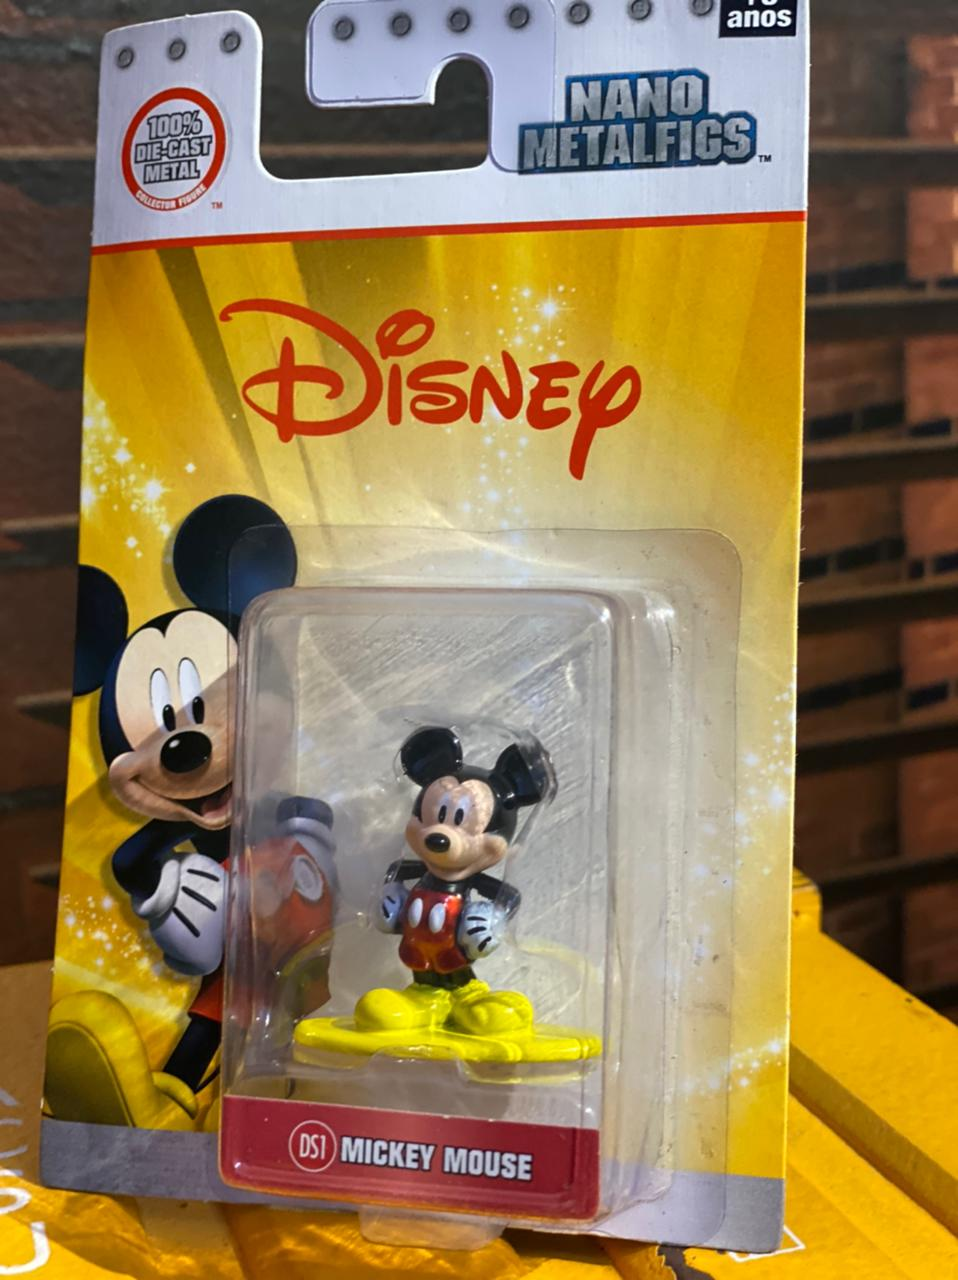 Nano Metalfigs: Mickey Mouse: Disney (DS1)